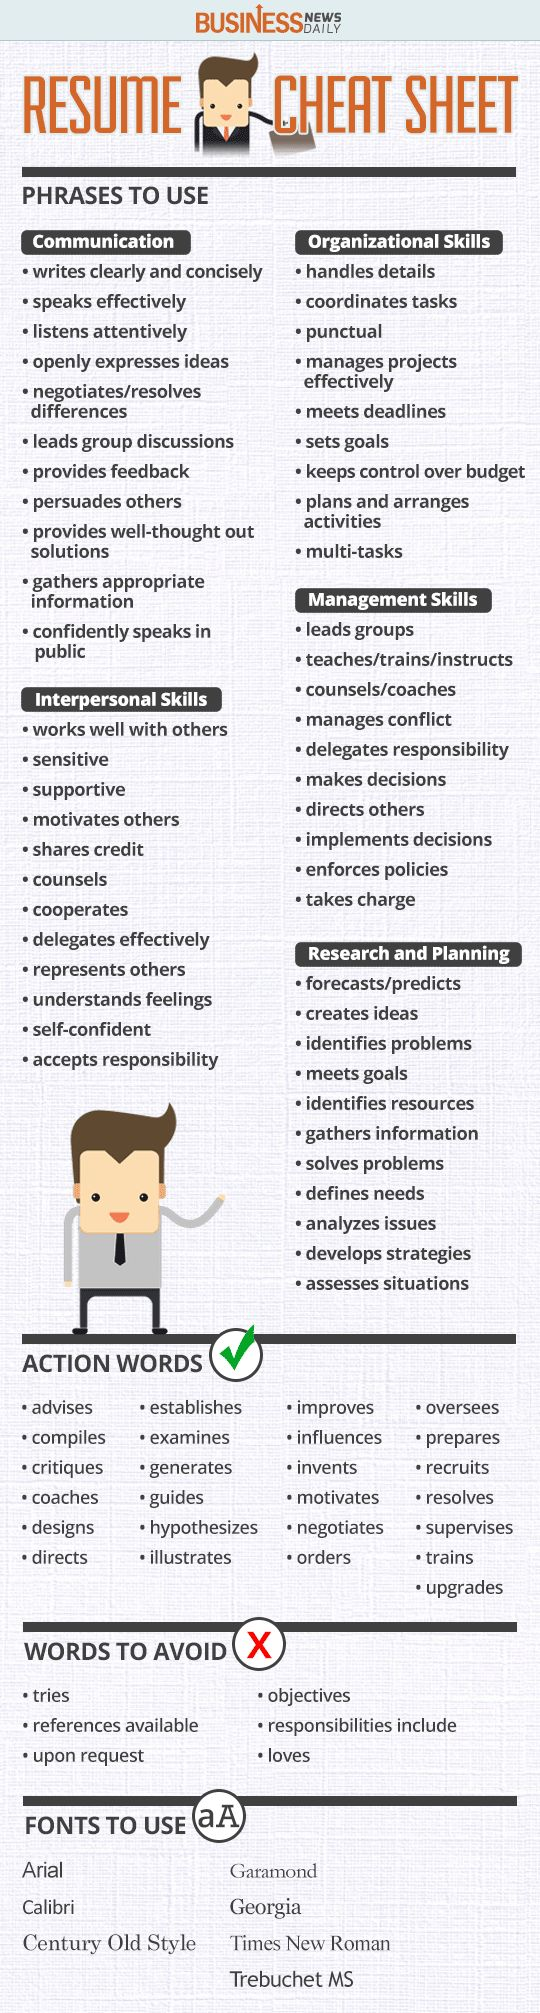 Opposenewapstandardsus  Stunning  Ideas About Resume On Pinterest  Cv Format Resume Cv And  With Extraordinary Resume Cheat Sheet Infographic Andrews Almost Done With A Complete Unit On Employment Which With Easy On The Eye Office Manager Sample Resume Also Difference Between A Cv And Resume In Addition Creative Resume Builder And Resume Purpose Statement As Well As Resume Recommendations Additionally Building A Good Resume From Pinterestcom With Opposenewapstandardsus  Extraordinary  Ideas About Resume On Pinterest  Cv Format Resume Cv And  With Easy On The Eye Resume Cheat Sheet Infographic Andrews Almost Done With A Complete Unit On Employment Which And Stunning Office Manager Sample Resume Also Difference Between A Cv And Resume In Addition Creative Resume Builder From Pinterestcom